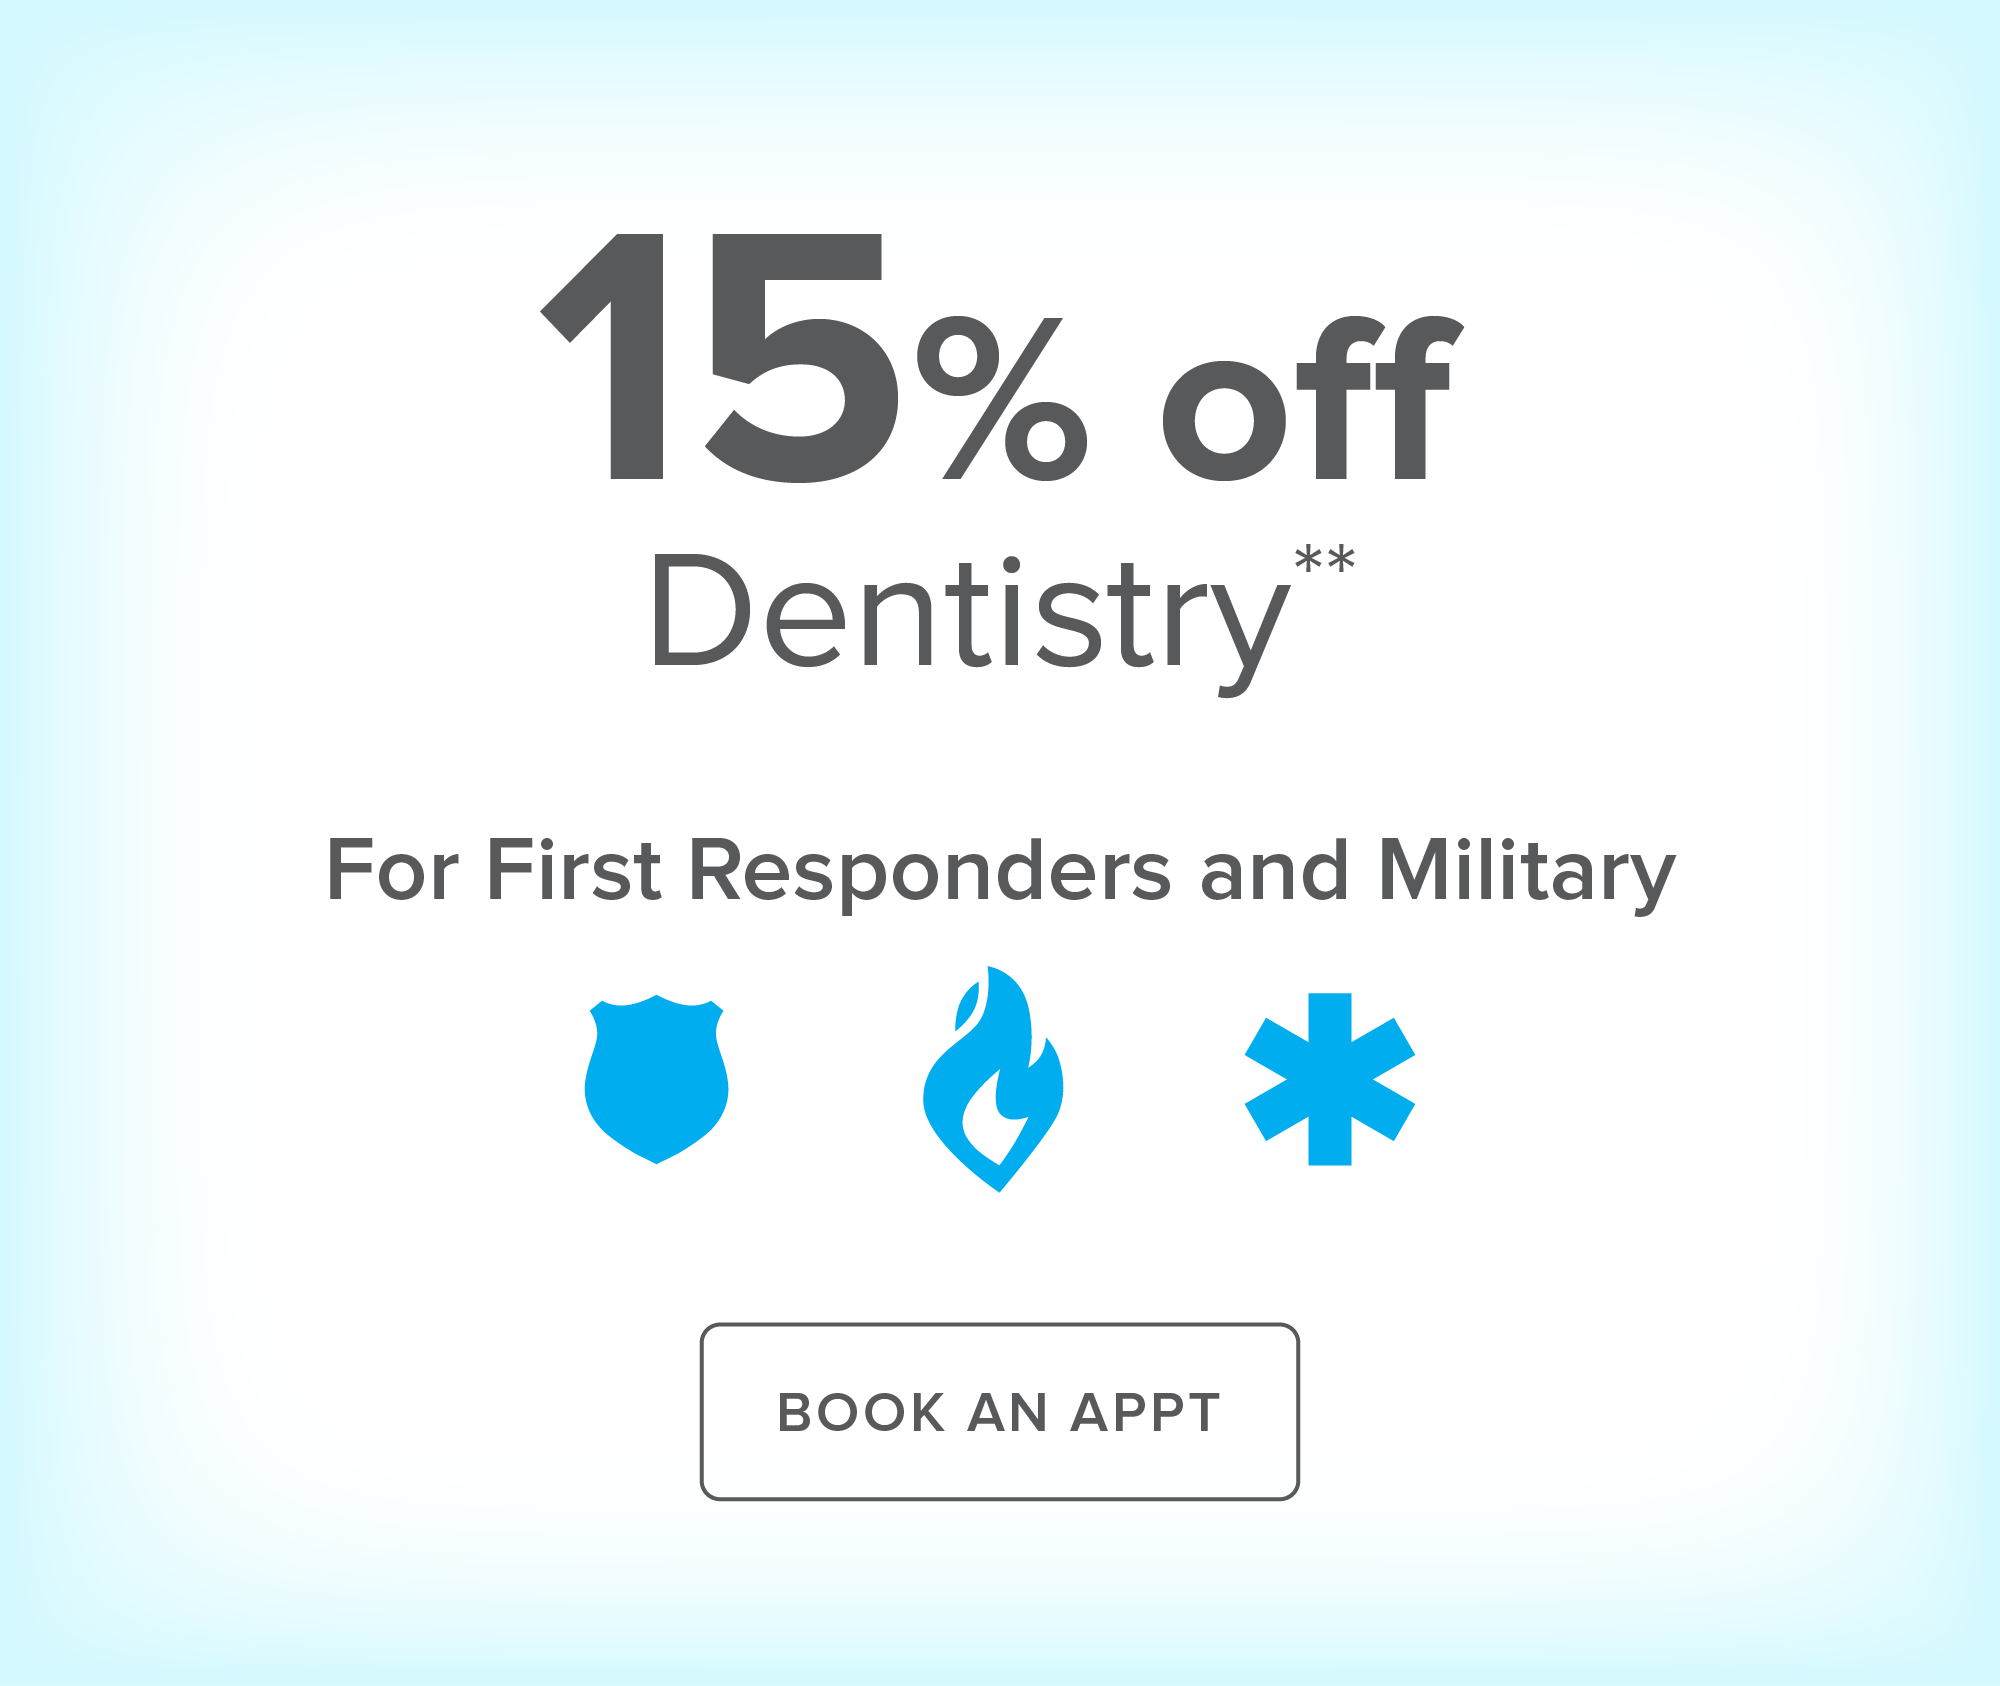 Cypress Crossroads Dental Group - 15% off Dentistry for First Responders and Military